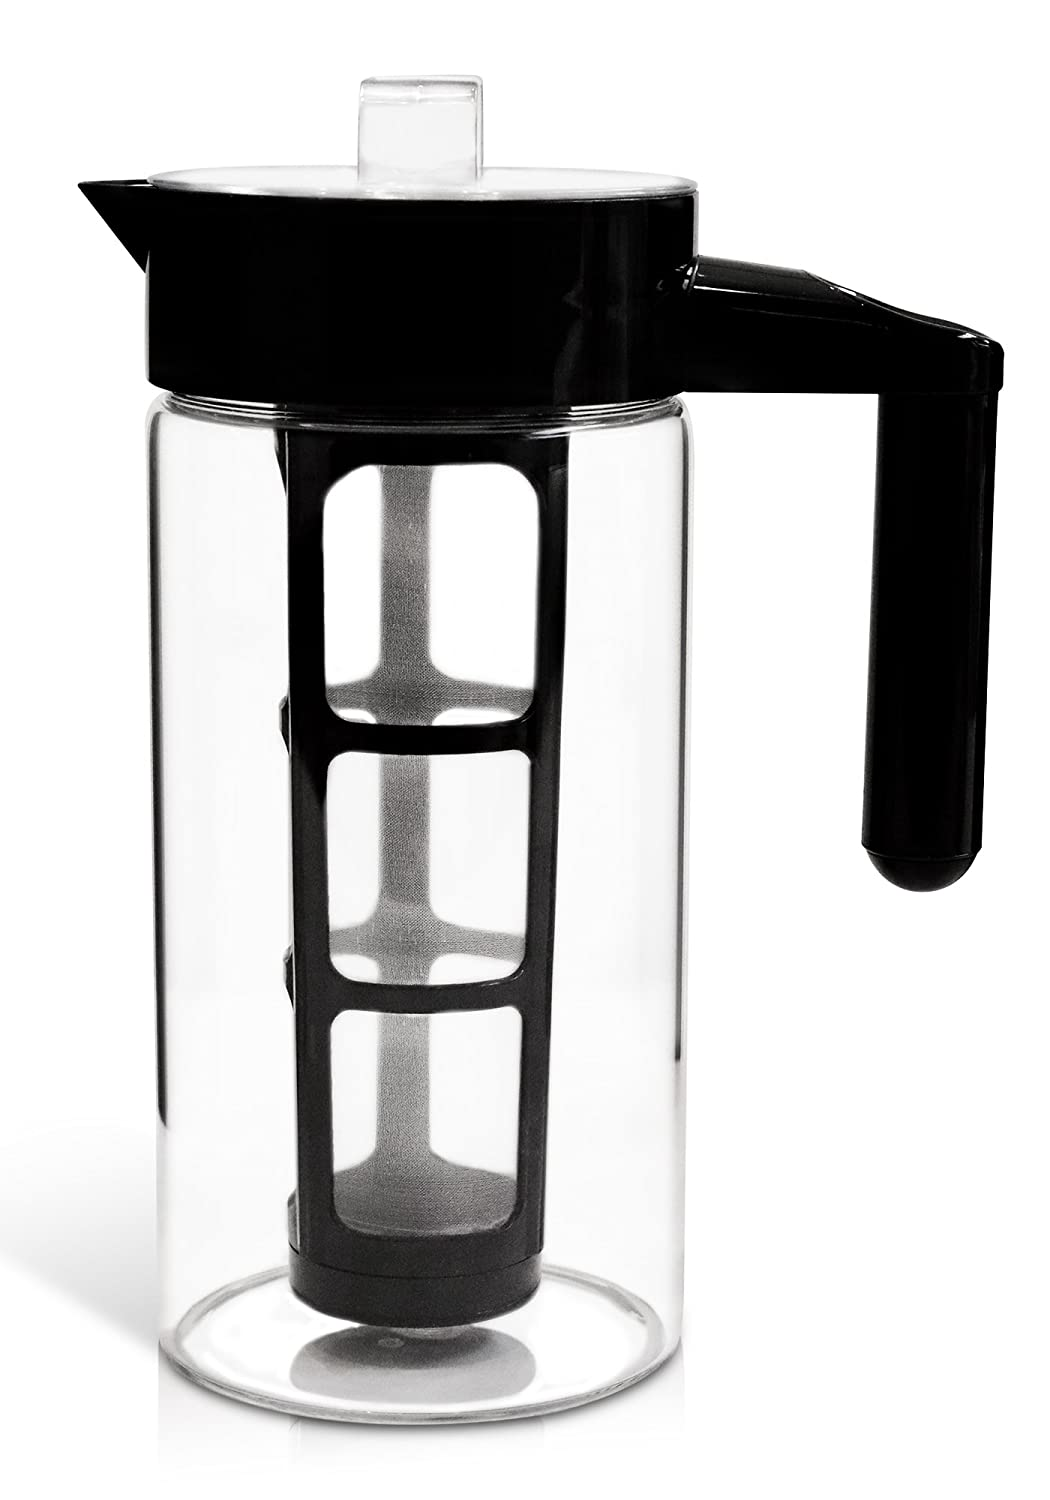 Zell Cold Brew Coffee Maker | Best Home Iced Coffee & Tea Maker with Removable Coffee Fine Mesh Filter | Premium Borosilicate Glass | BONUS Fruit Infusion Filter | 1 Quart (1000 ml)